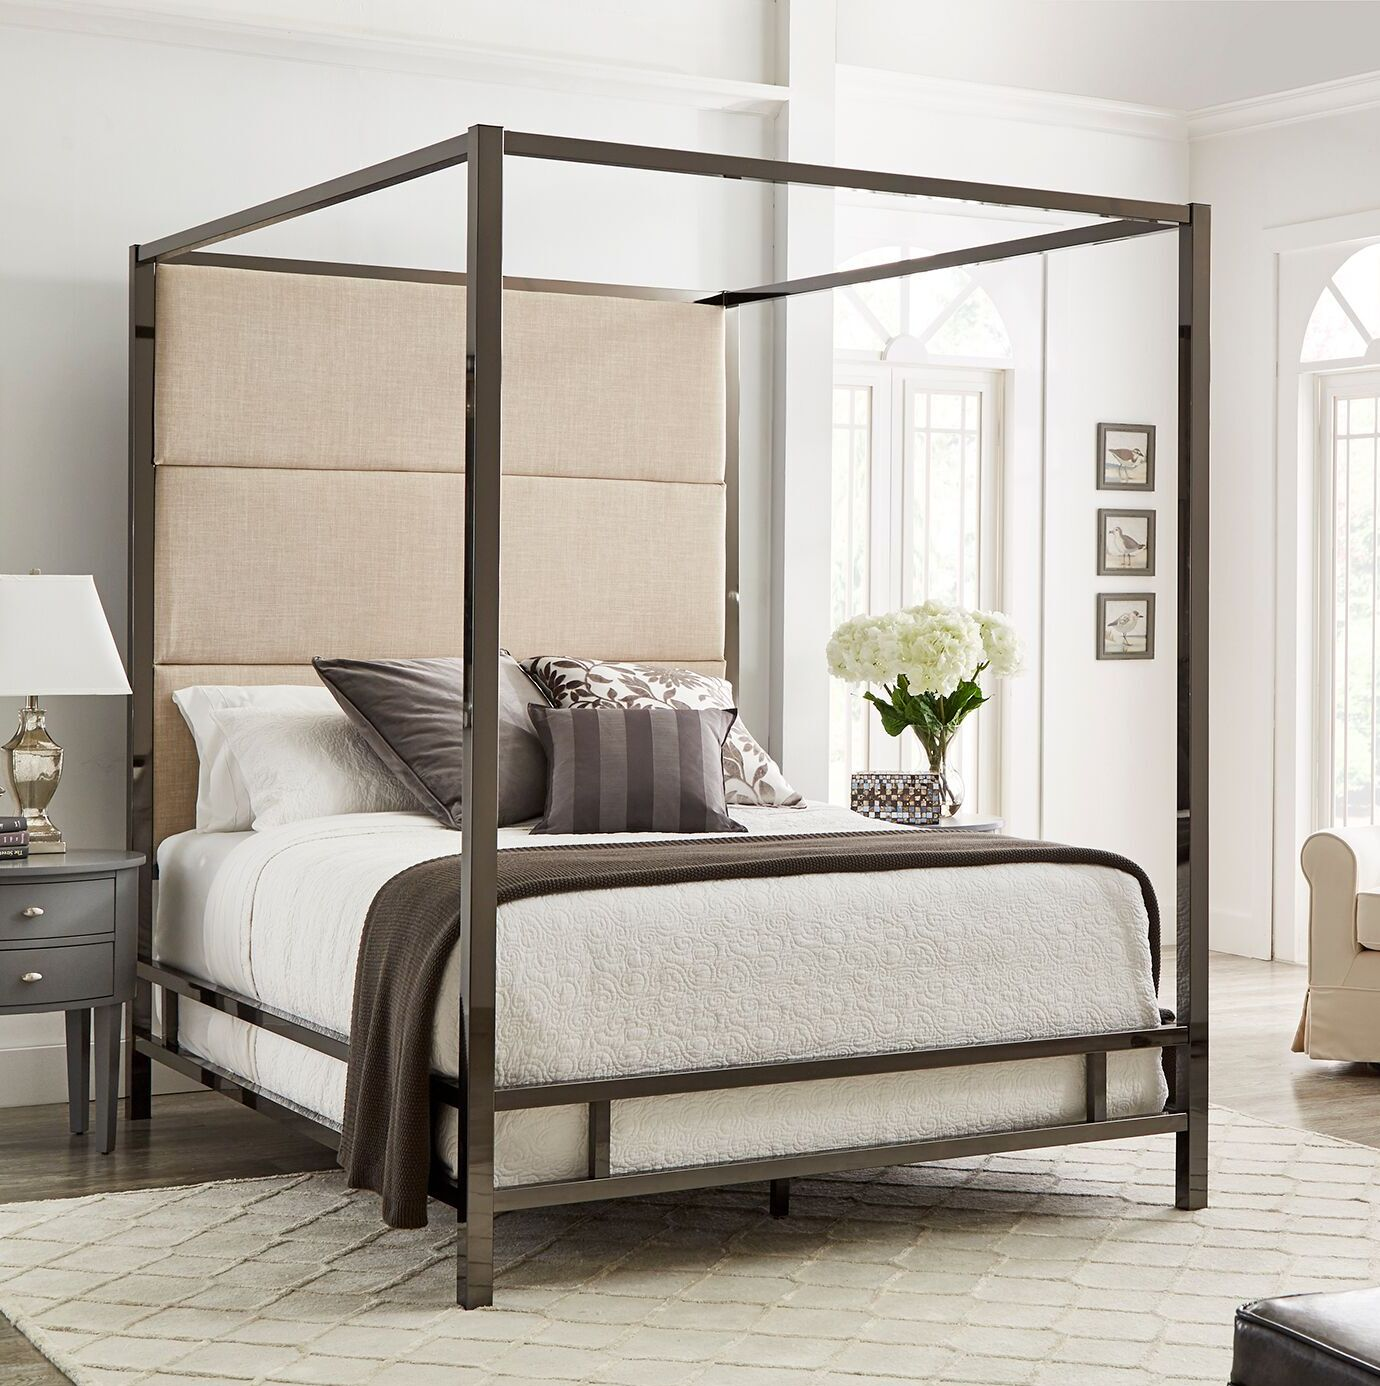 Weymouth Upholstered�Canopy Bed Size: Full, Color: White/Black Nickel